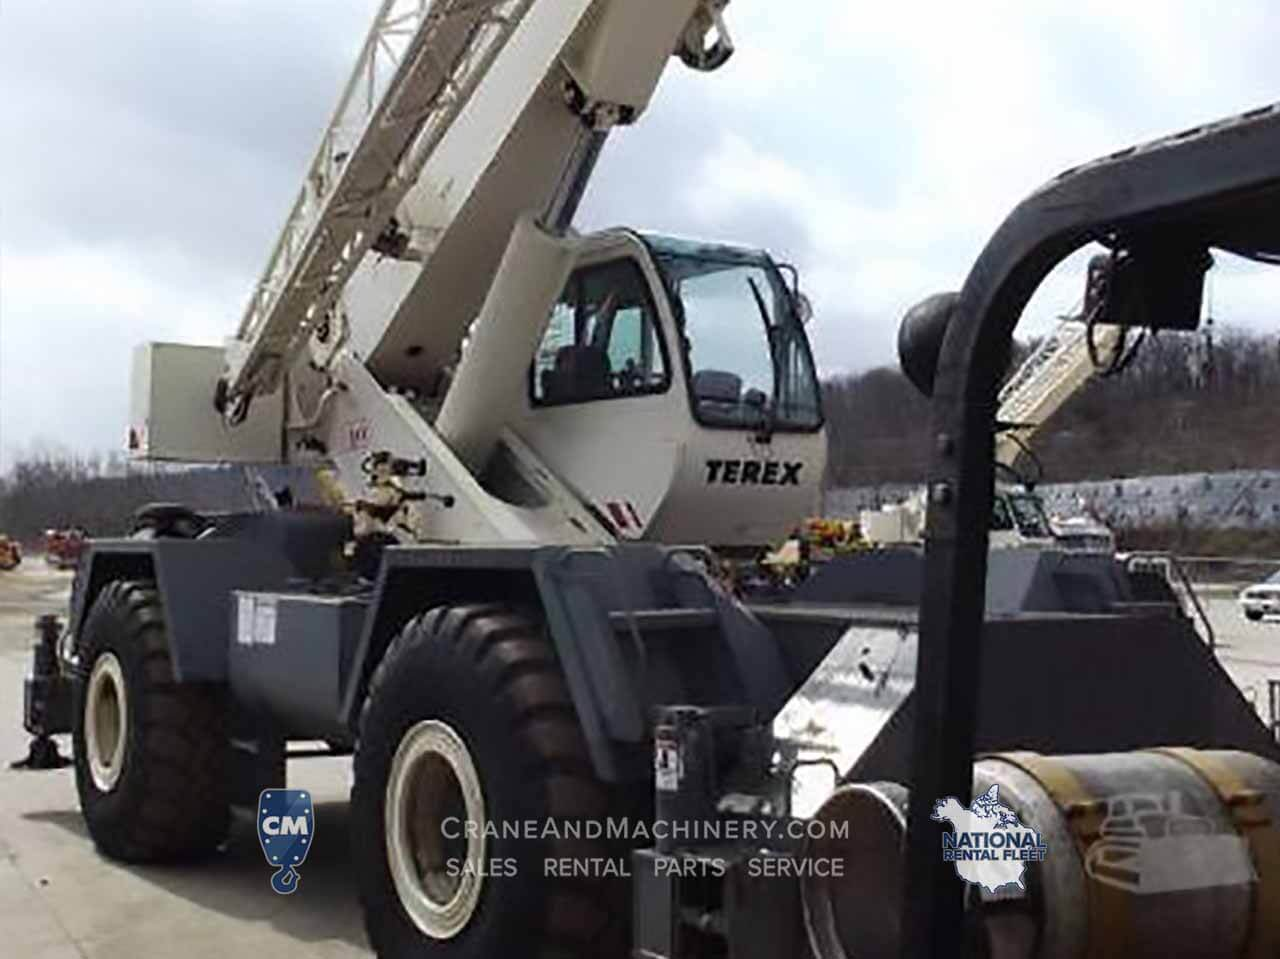 Terex RT 335 -Terex RT Crane rentals for Chicago, and North America. Long term and short term rentals available. Purchase new or used Terex RT cranes at Crane & Machinery